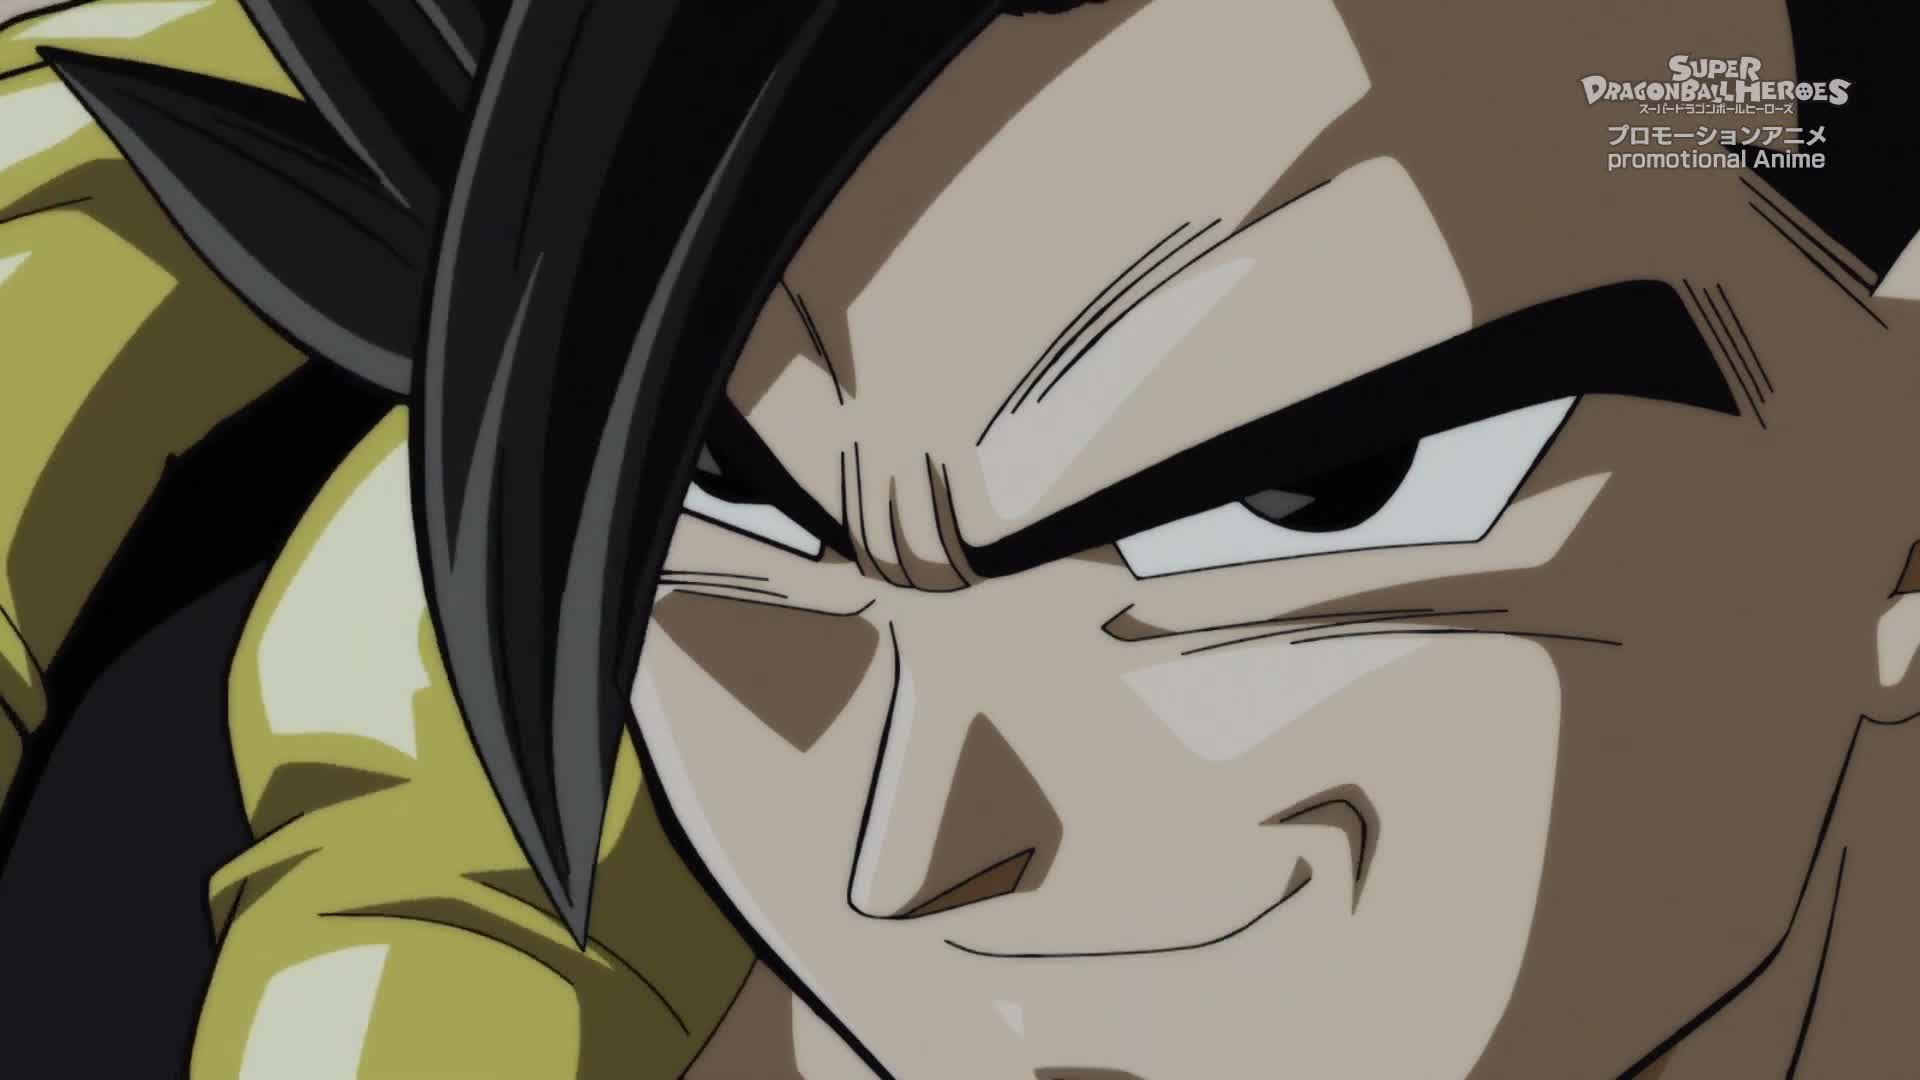 y2mate.com - super_dragon_ball_heroes_episode_17_gogeta_returns_iws-xMZVPRw_1080p_4179.jpg